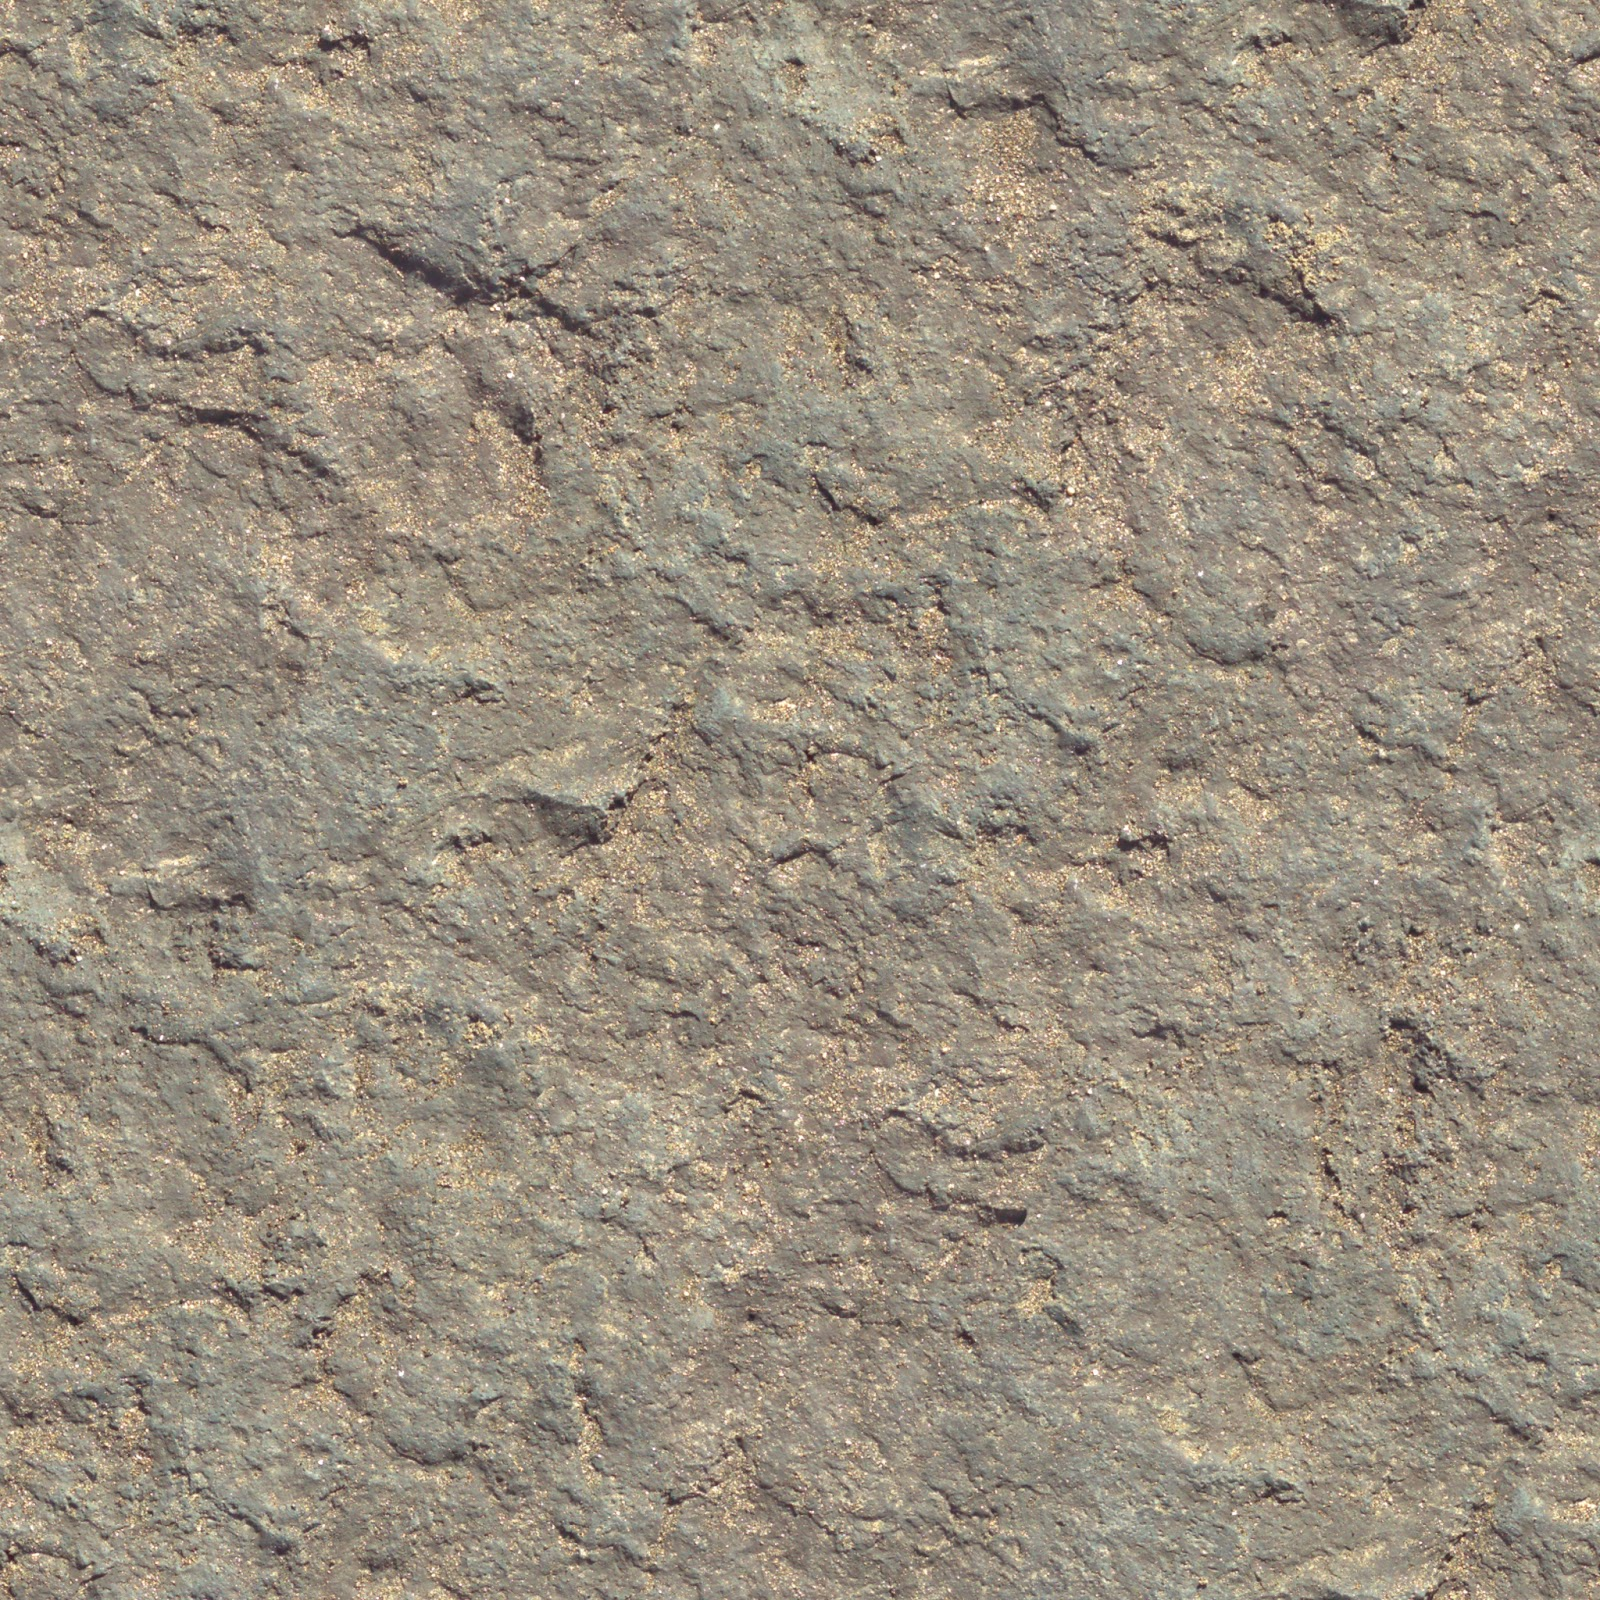 Mountain brown rock seamless texture 2048x2048